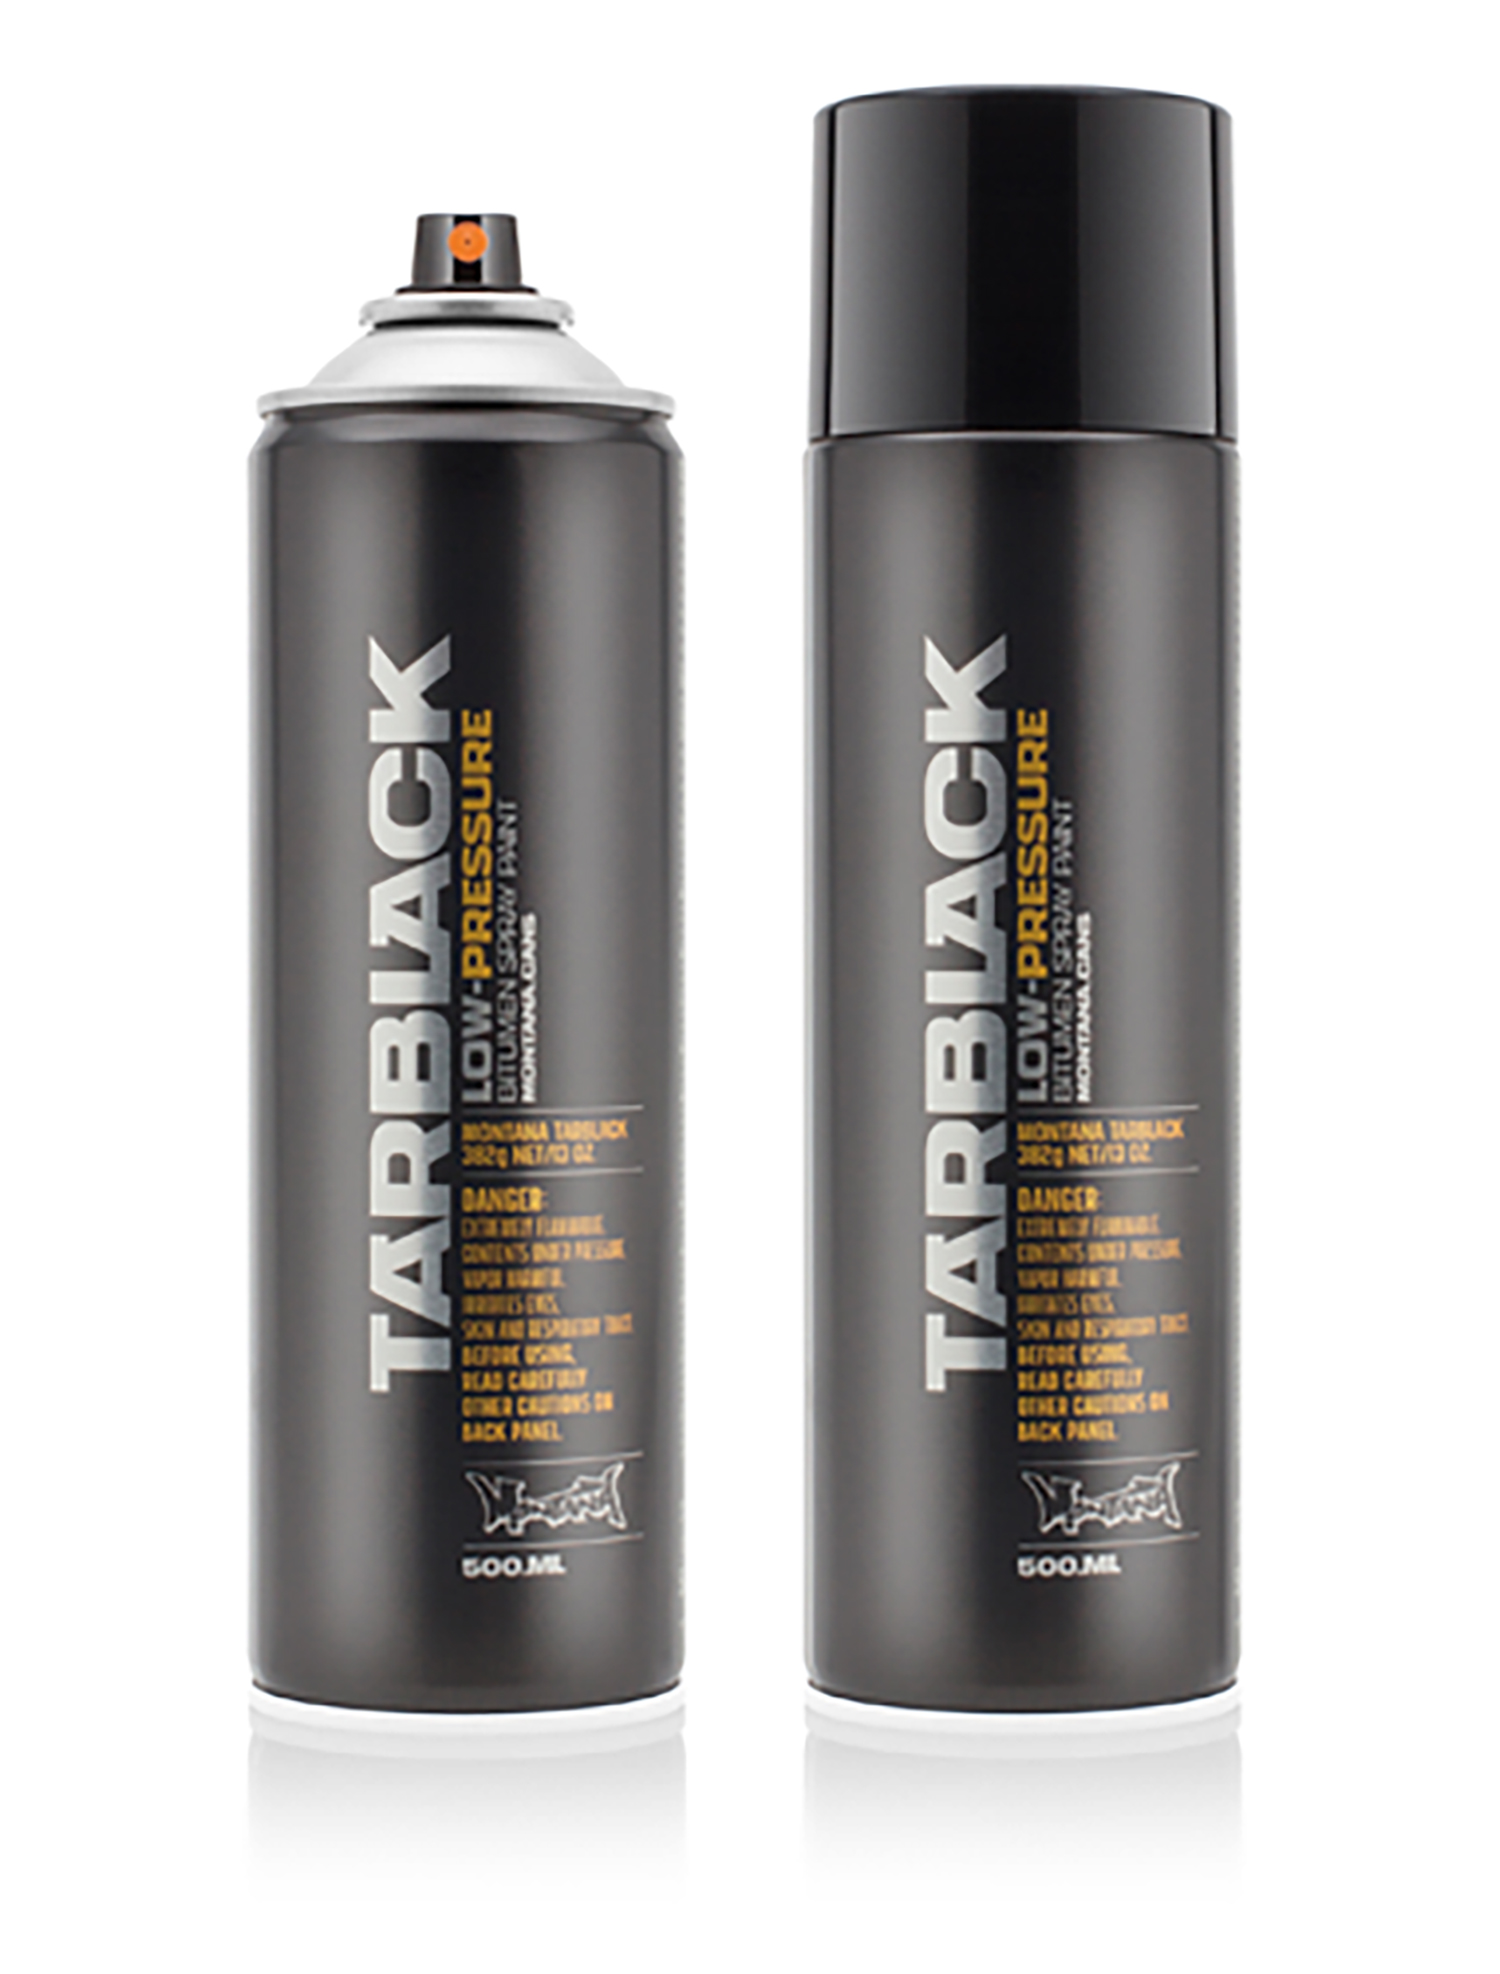 MONTANA-TARBLACK-SPRAY-500ML-02